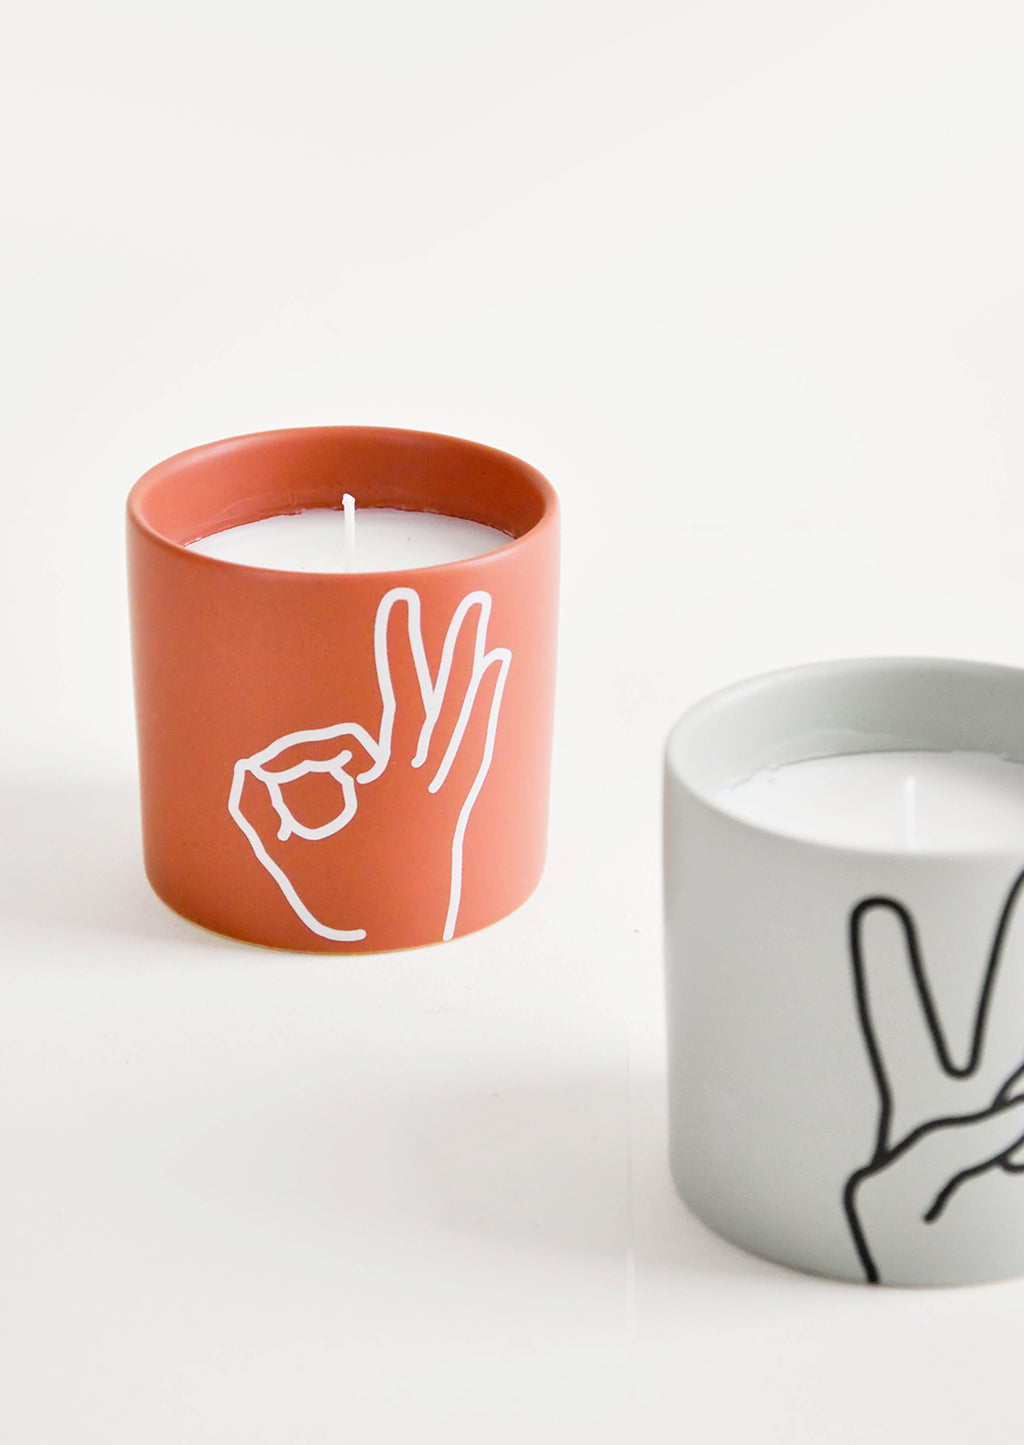 2: Scented candles in colored ceramic jar with hand symbol graphics